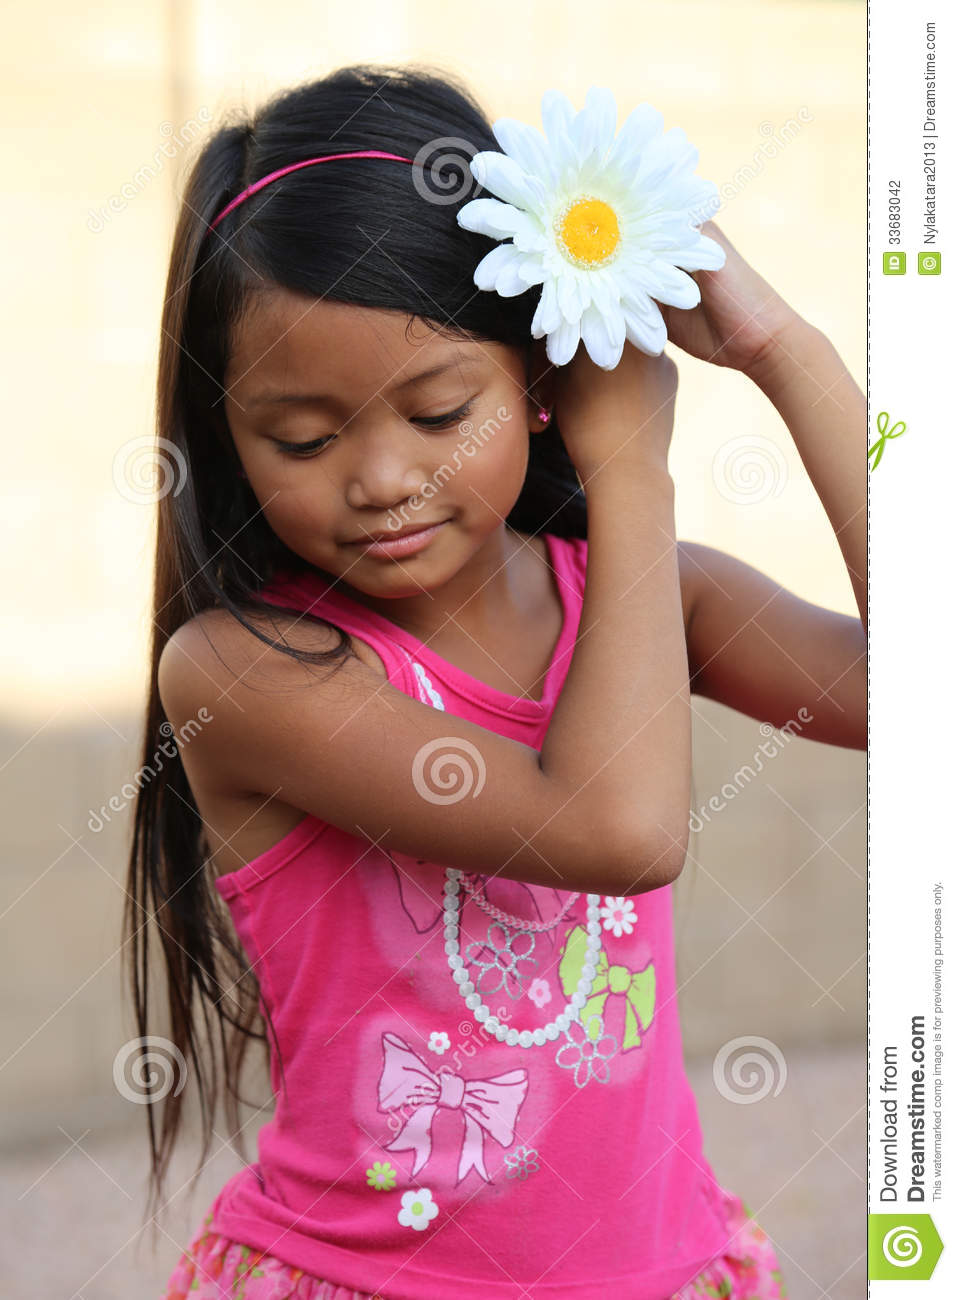 Girl Putting Flower In Hair Stock Photo Image Of Stem Day 33683042